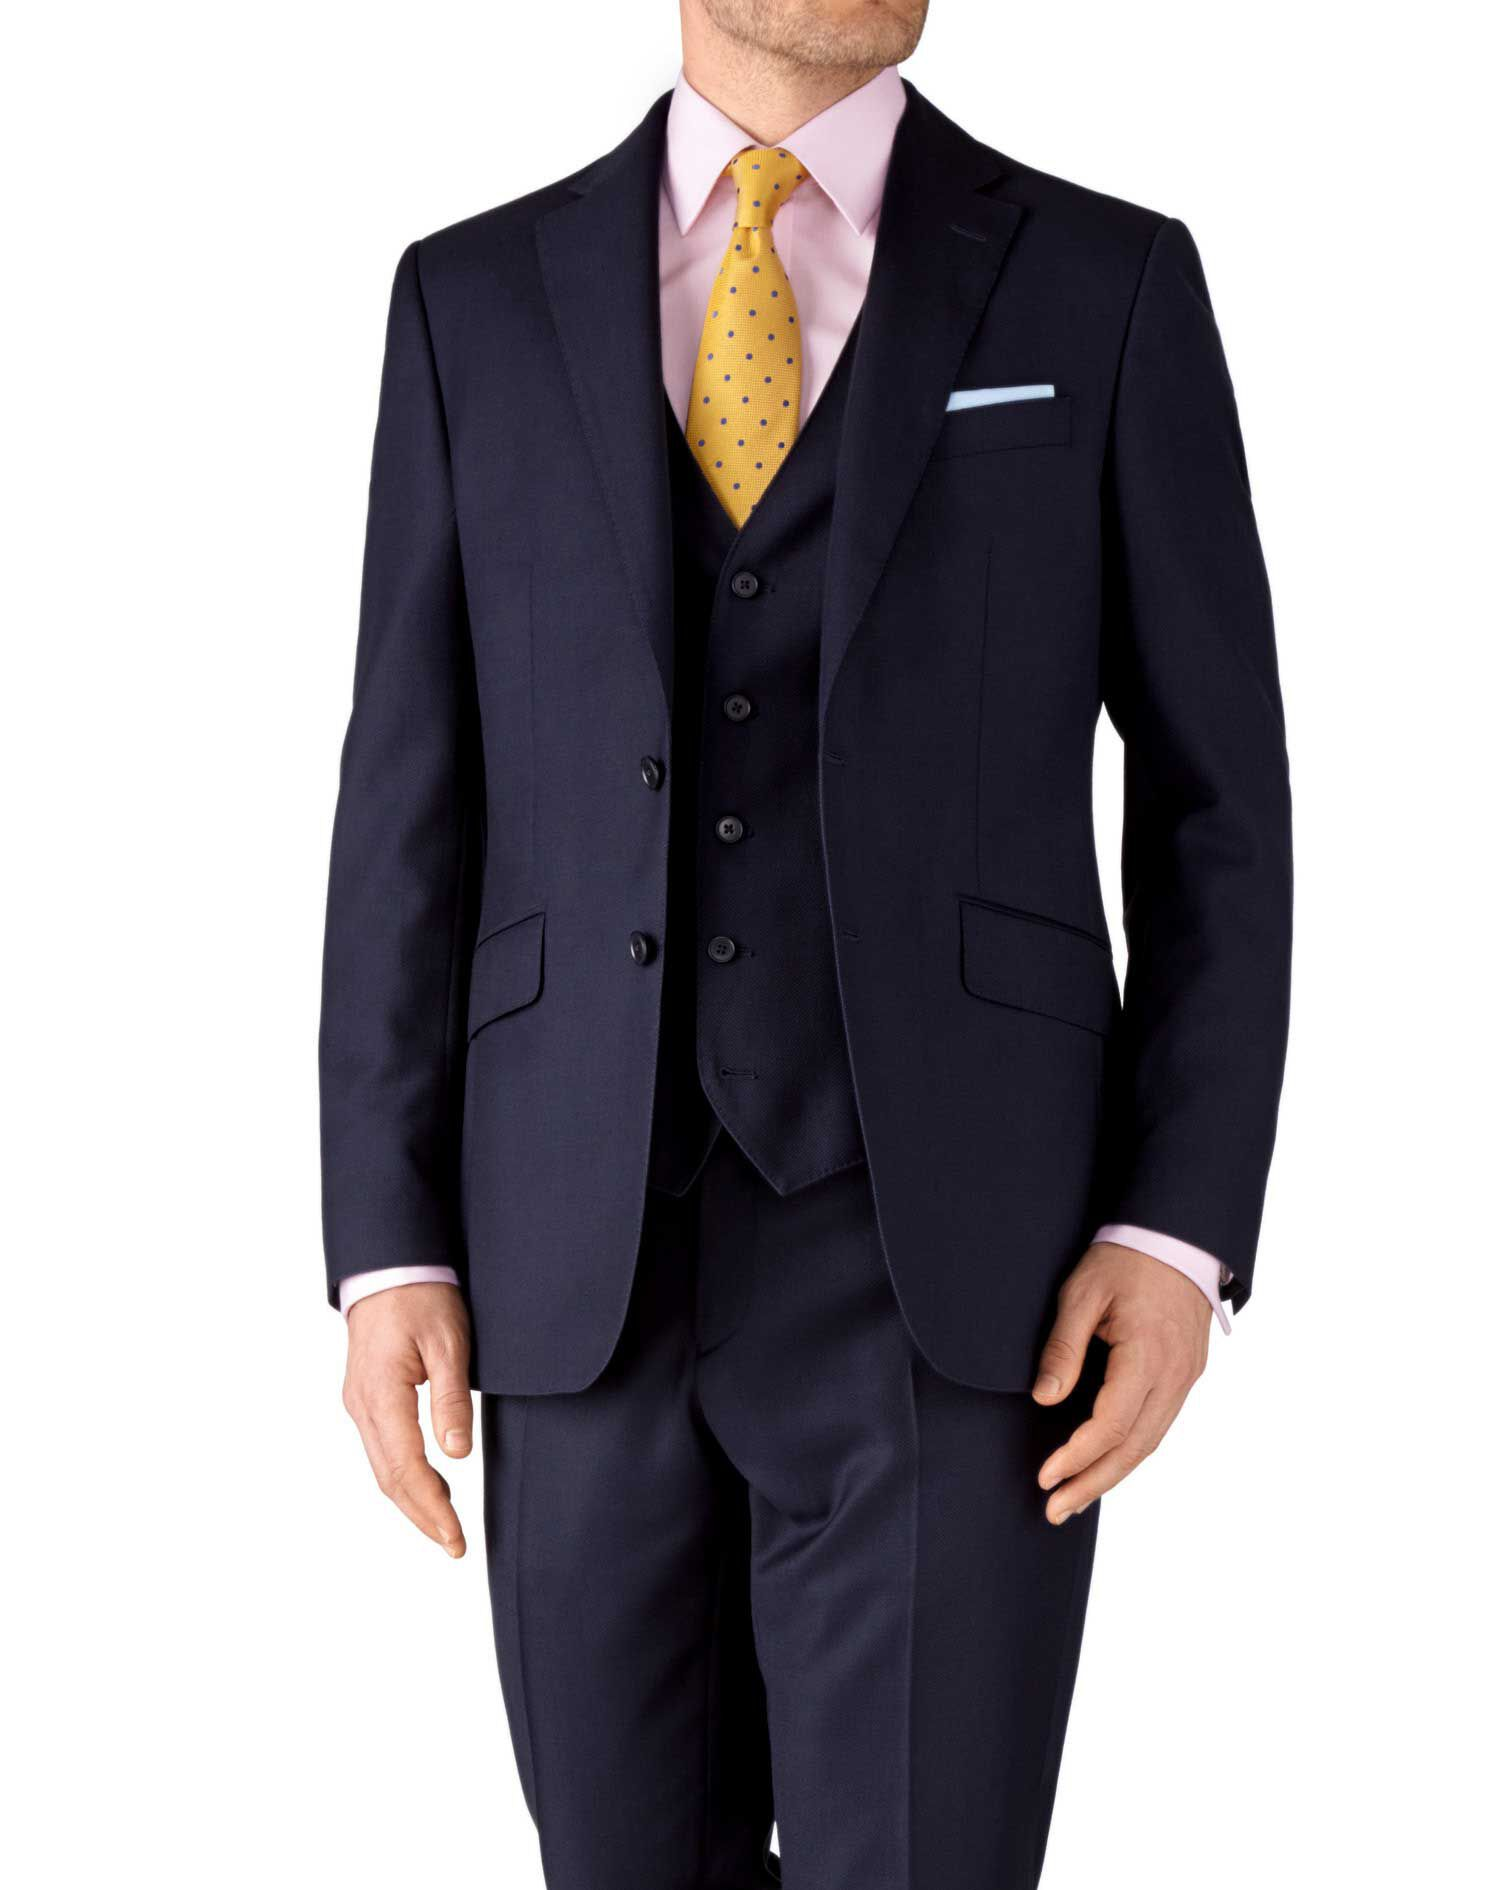 Navy Classic Fit Birdseye Travel Suit Wool Jacket Size 40 Long by Charles Tyrwhitt